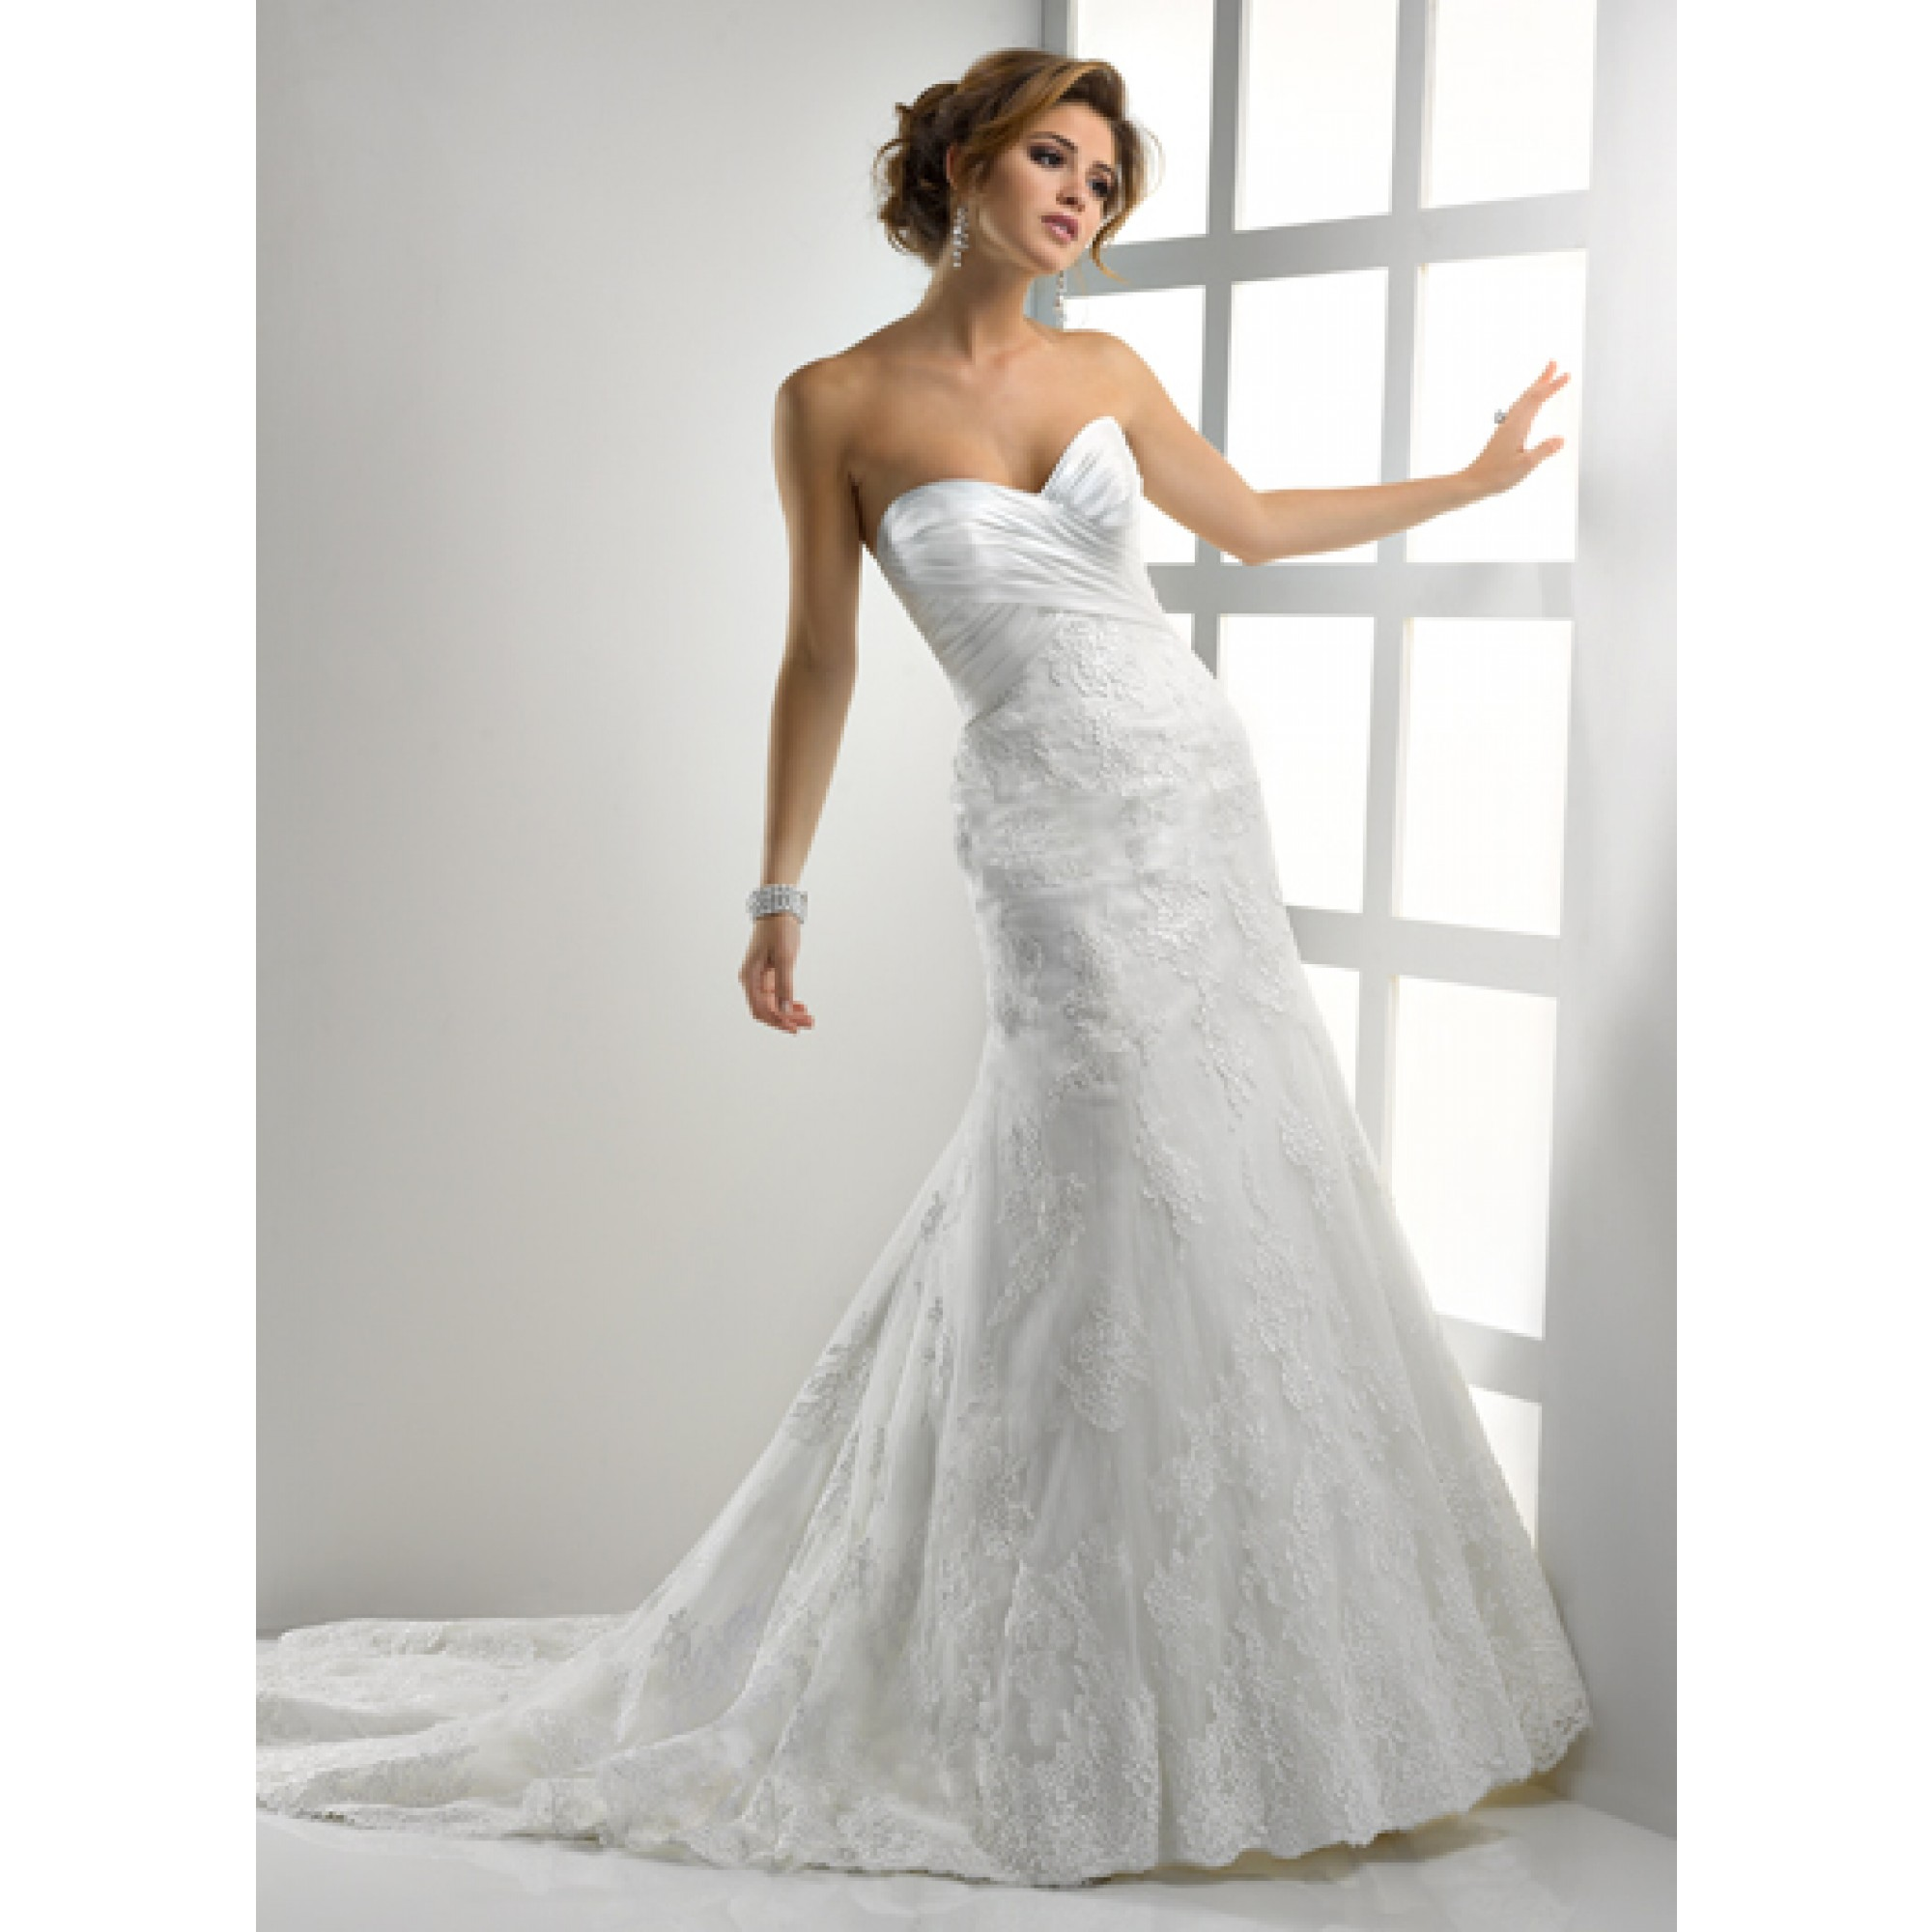 Ten best lace wedding dress designers bestbride101 for Famous wedding dress designers